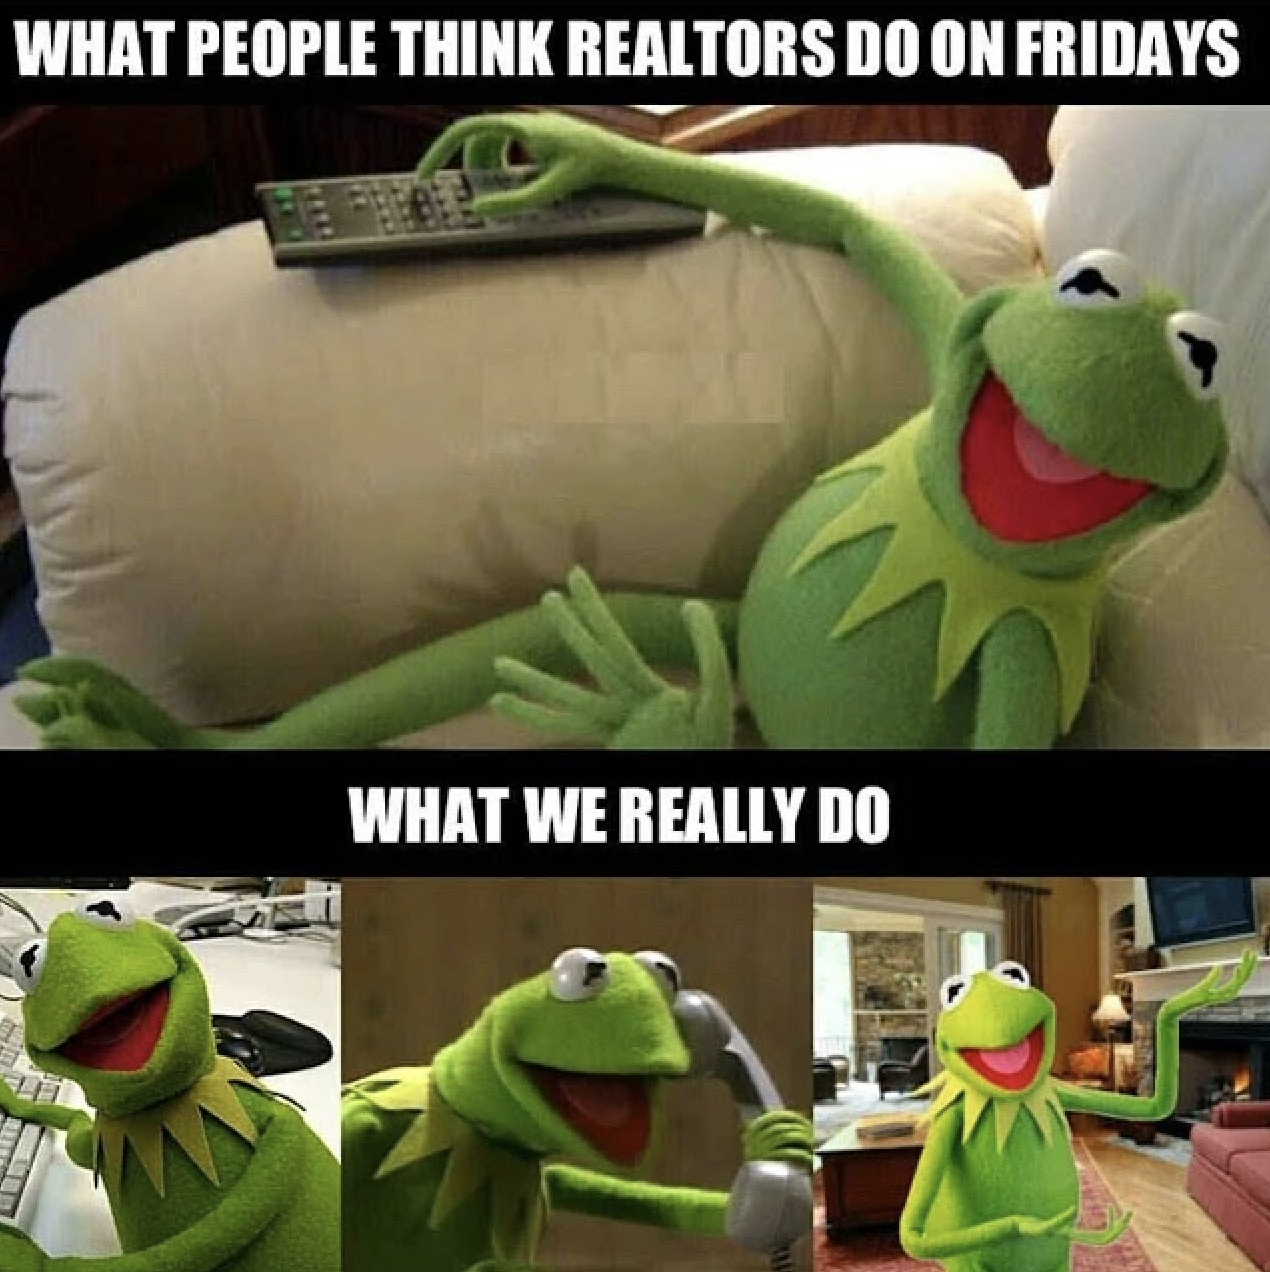 What people think realtors do on fridays ... what we really do